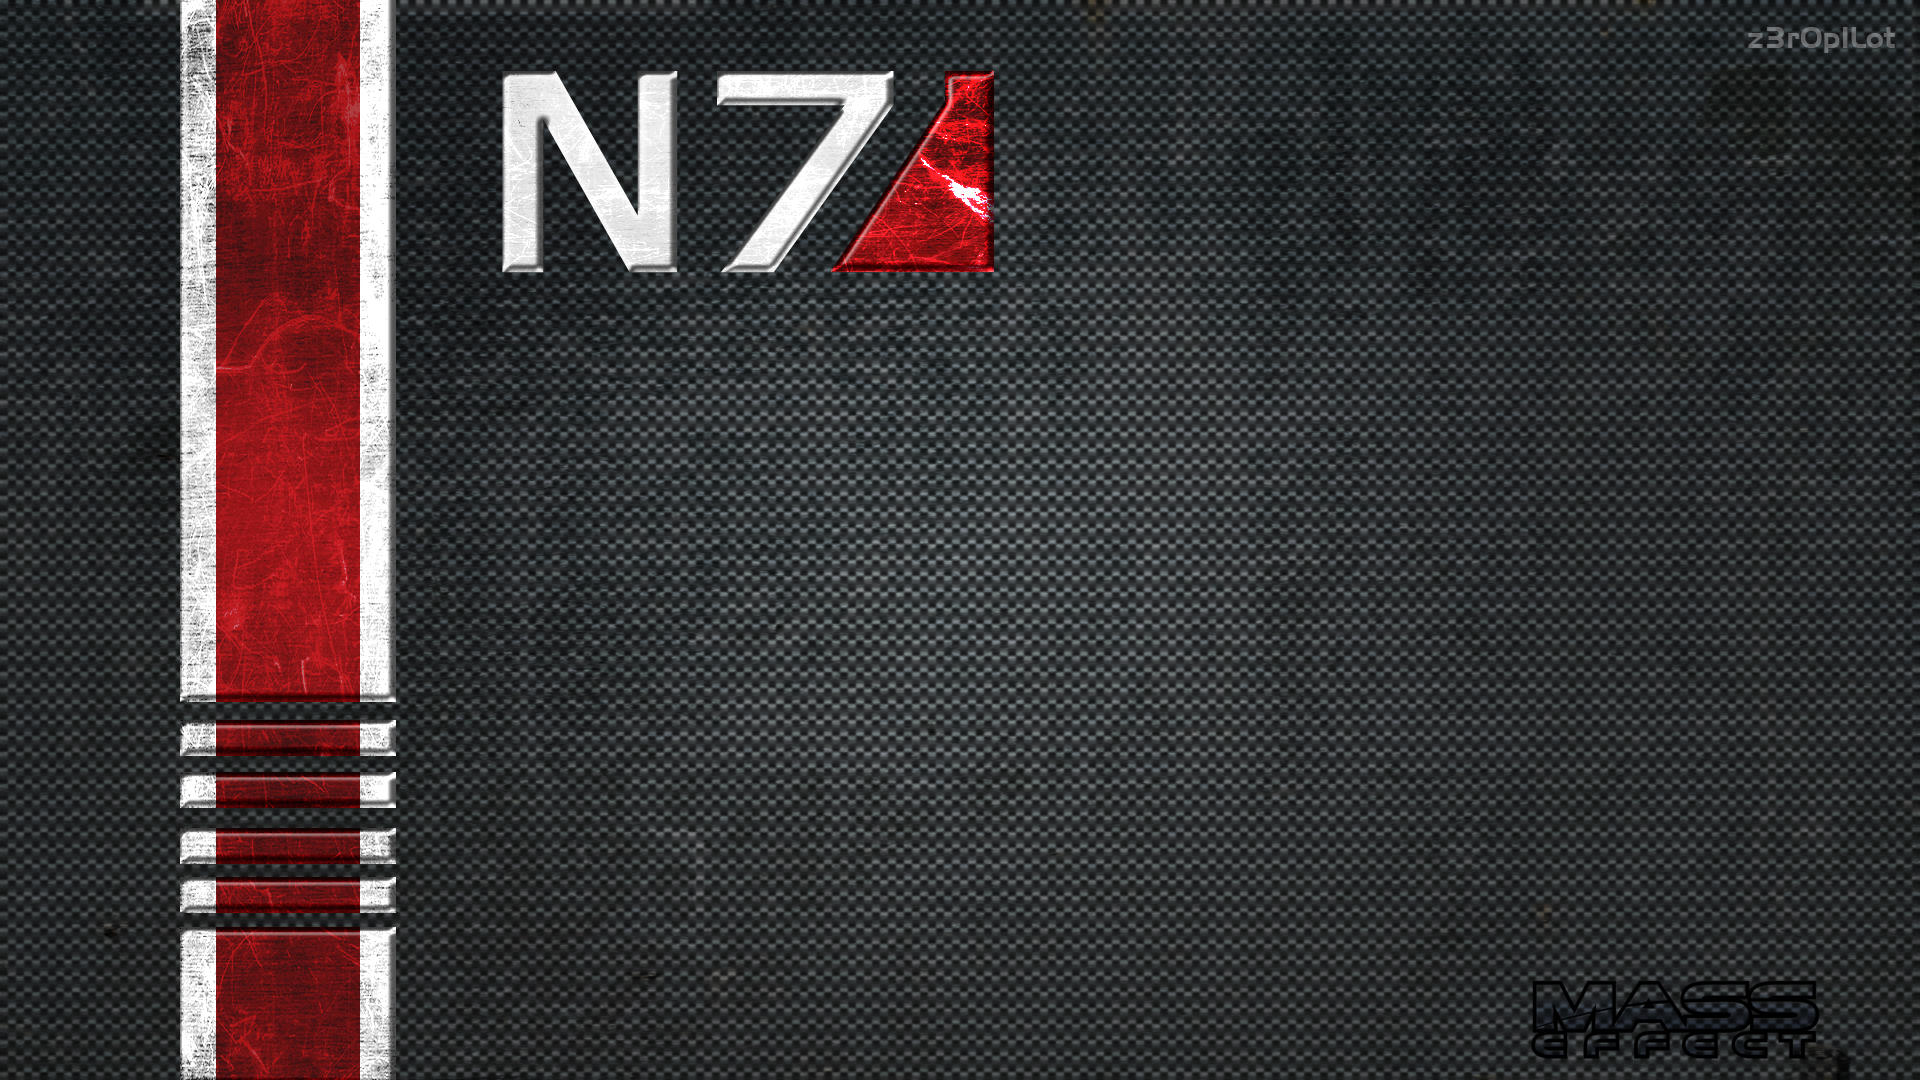 Iphone Wallpaper Hd Red N7 Wallpaper By Z3r0p1lot On Deviantart